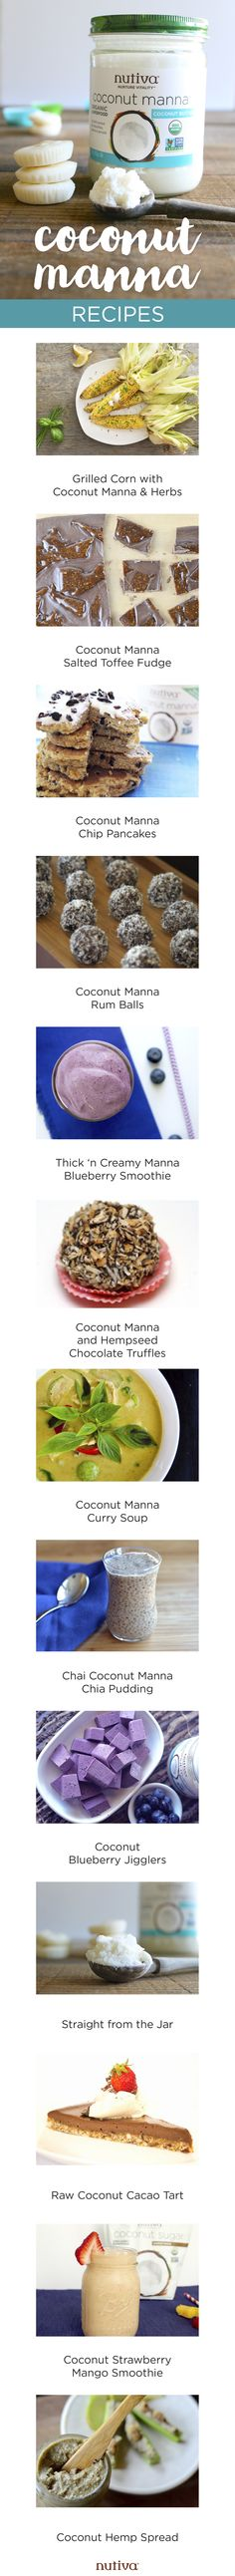 Your Complete Guide to Coconut Manna kitchen.nutiva.com Coconut Butter Recipes